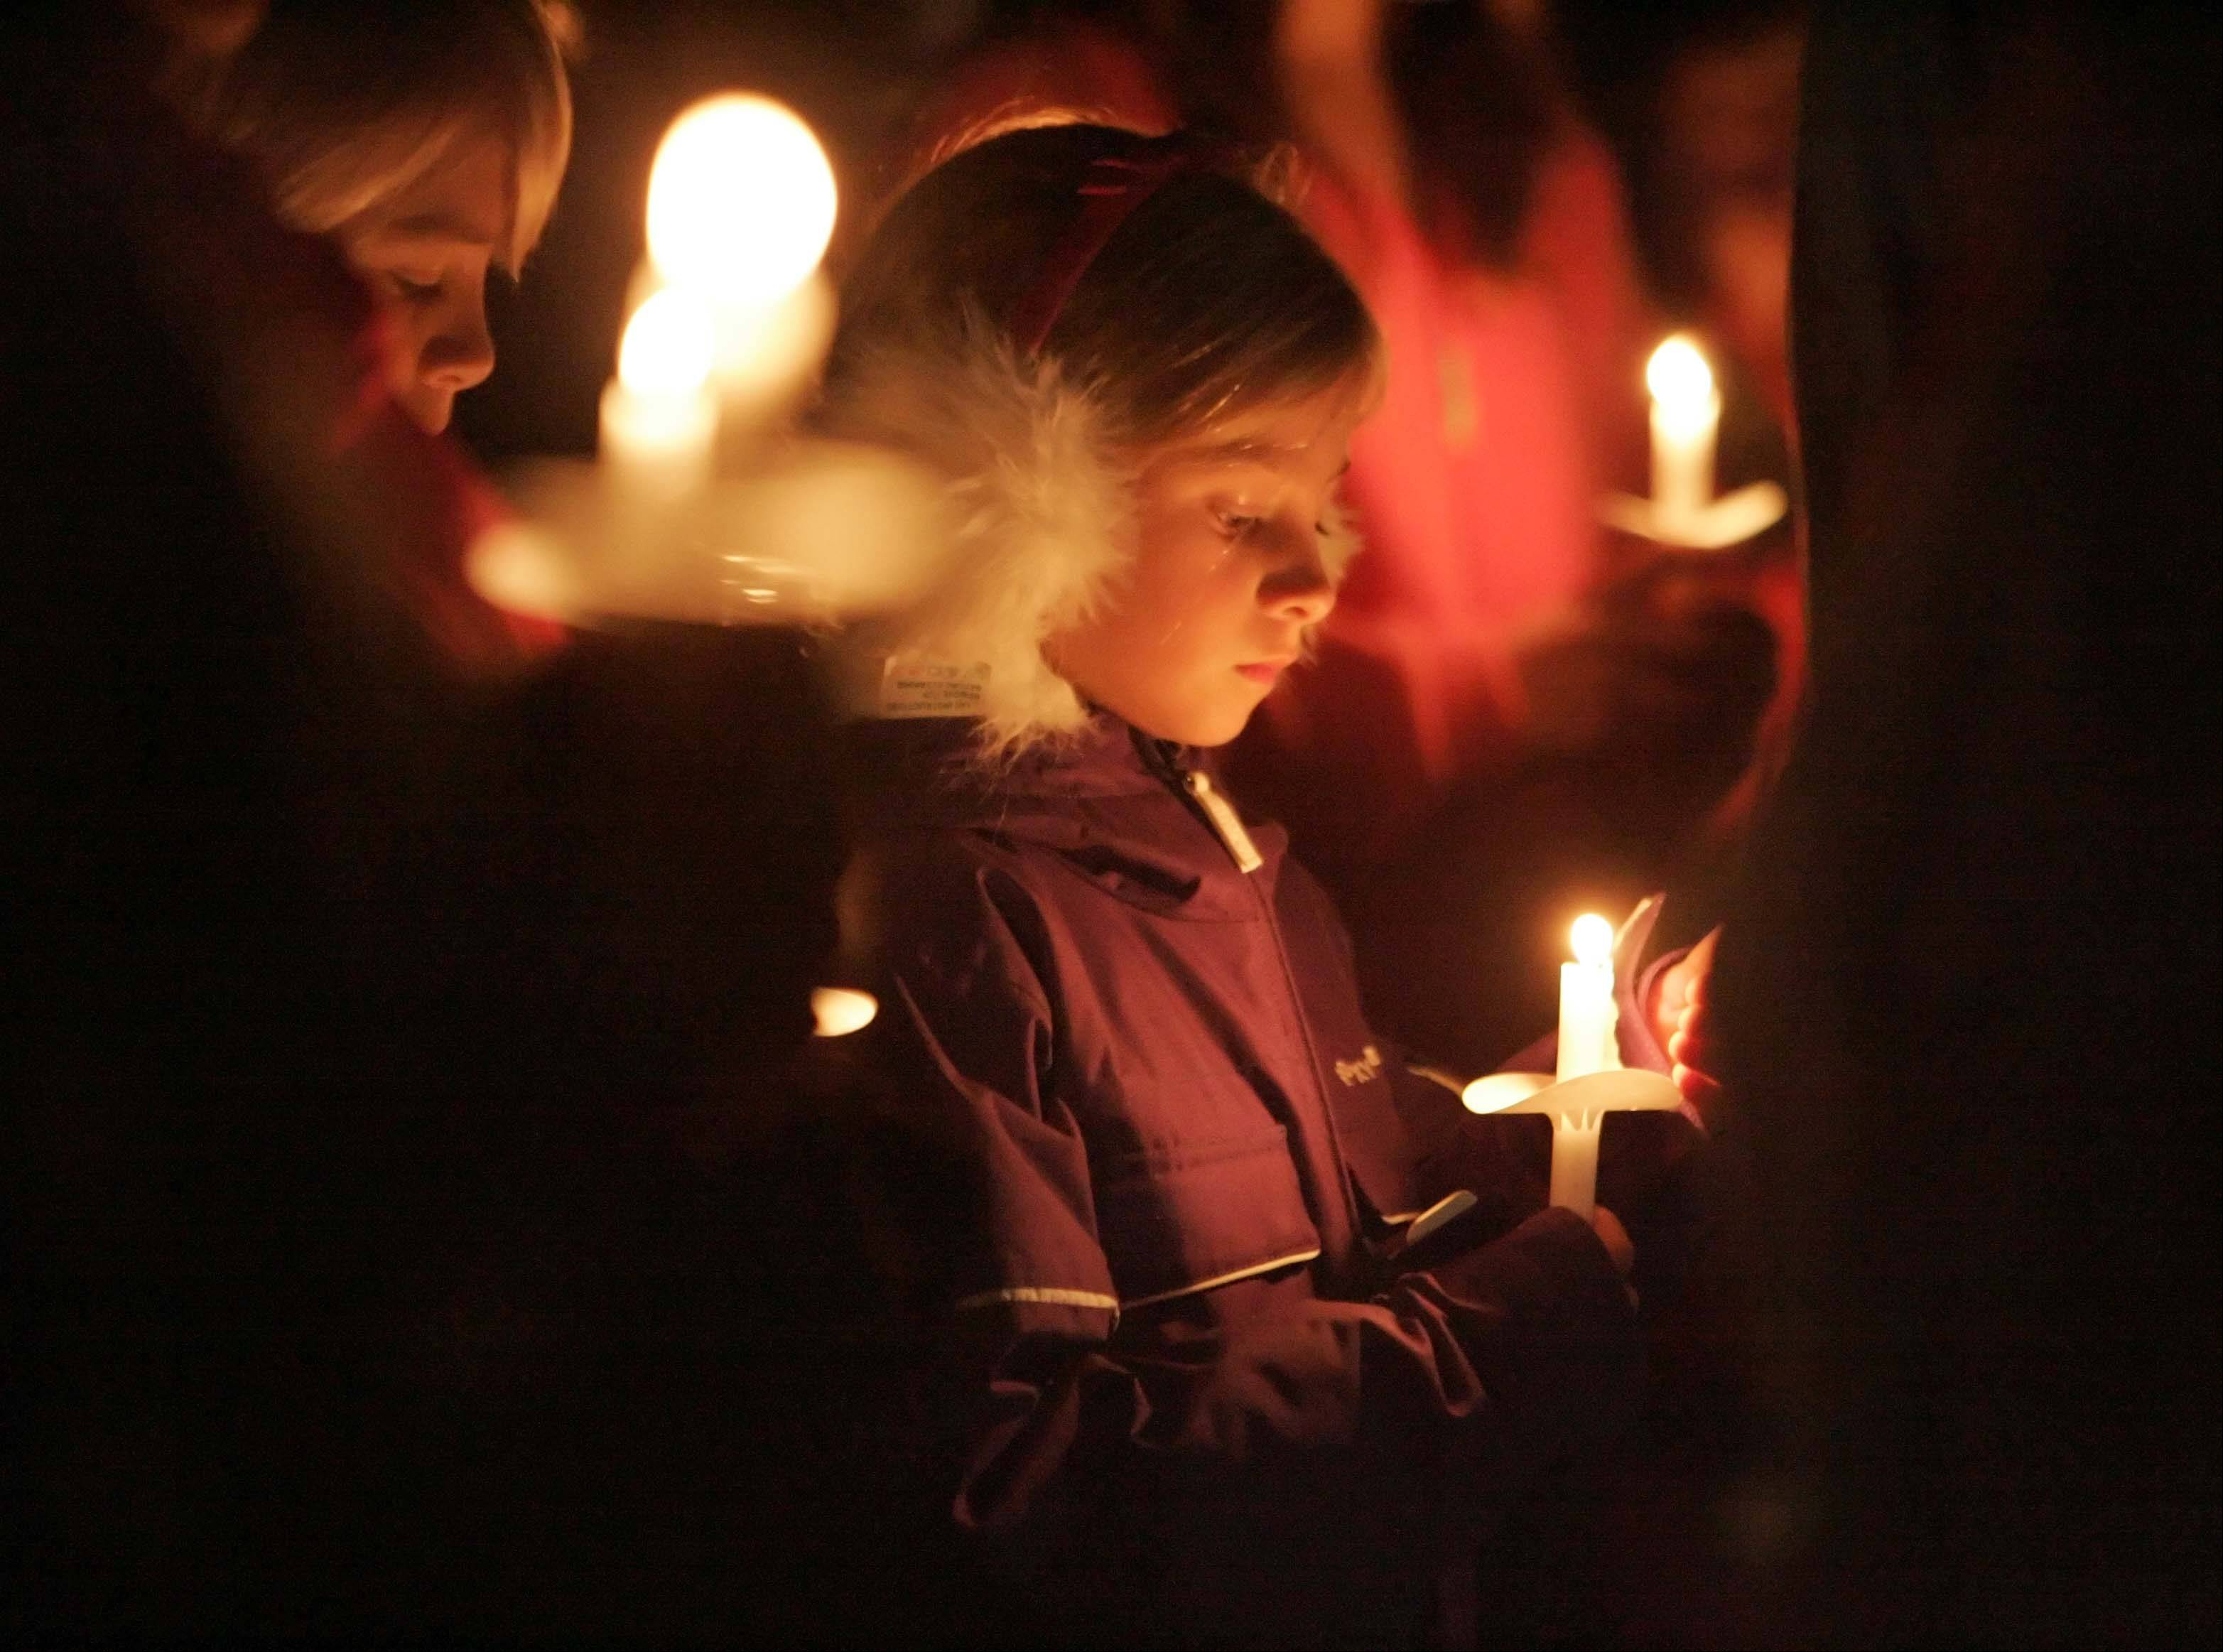 A girl named Lucy pauses during a moment of silence during a vigil Friday night for 5-year-old Olivia Dworakowski at St. Thomas the Apostle Catholic Church in Naperville.